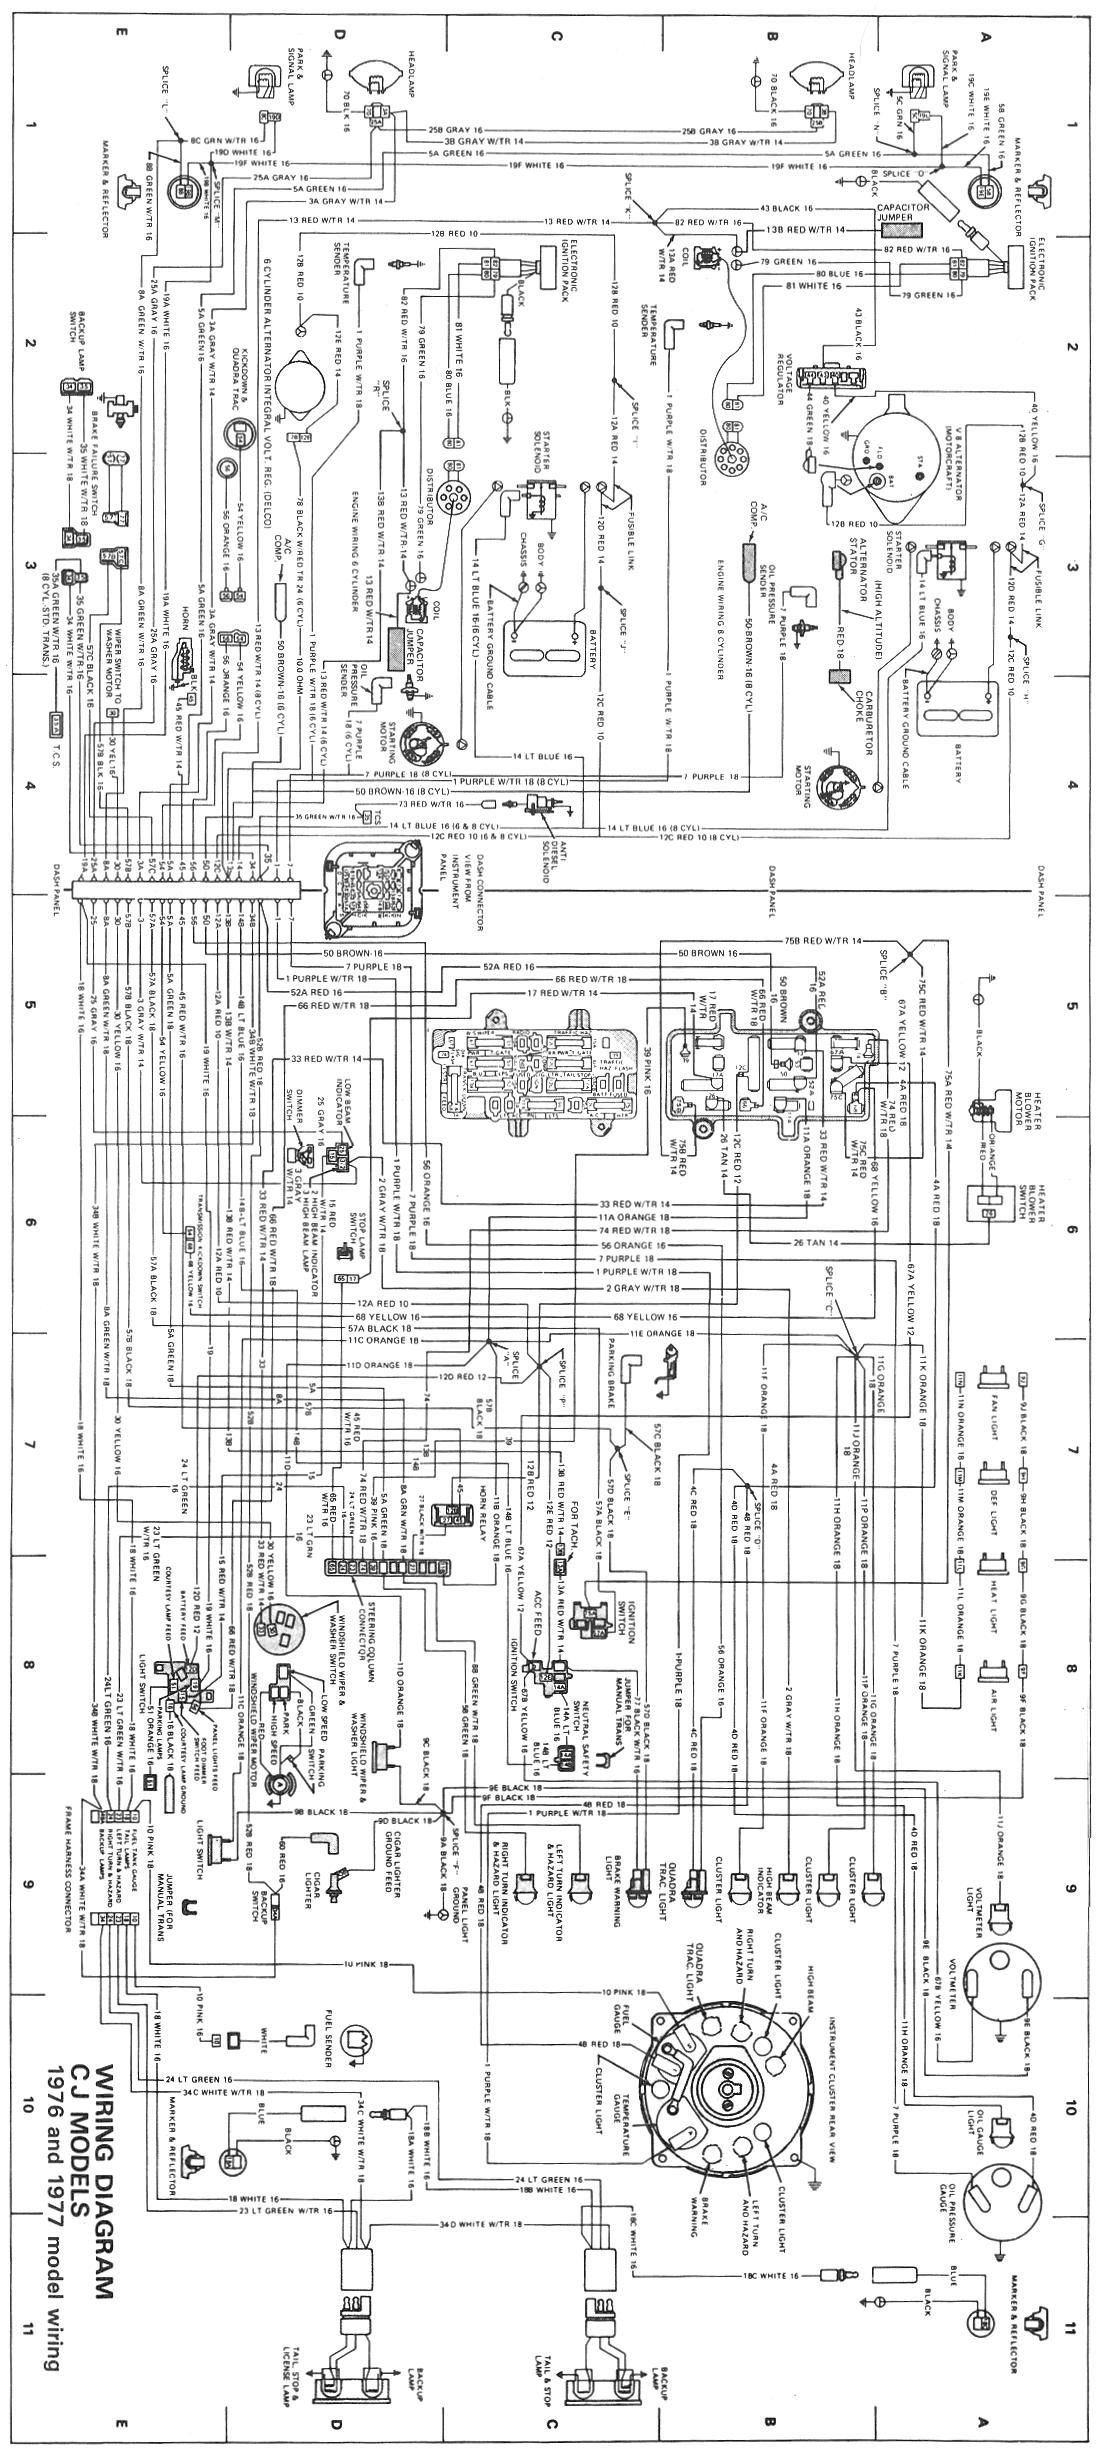 Country Coach Wiring Schematic Archive Of Automotive Diagram Thor Rv Schematics Jeep Just Rh Lailamaed Co Uk